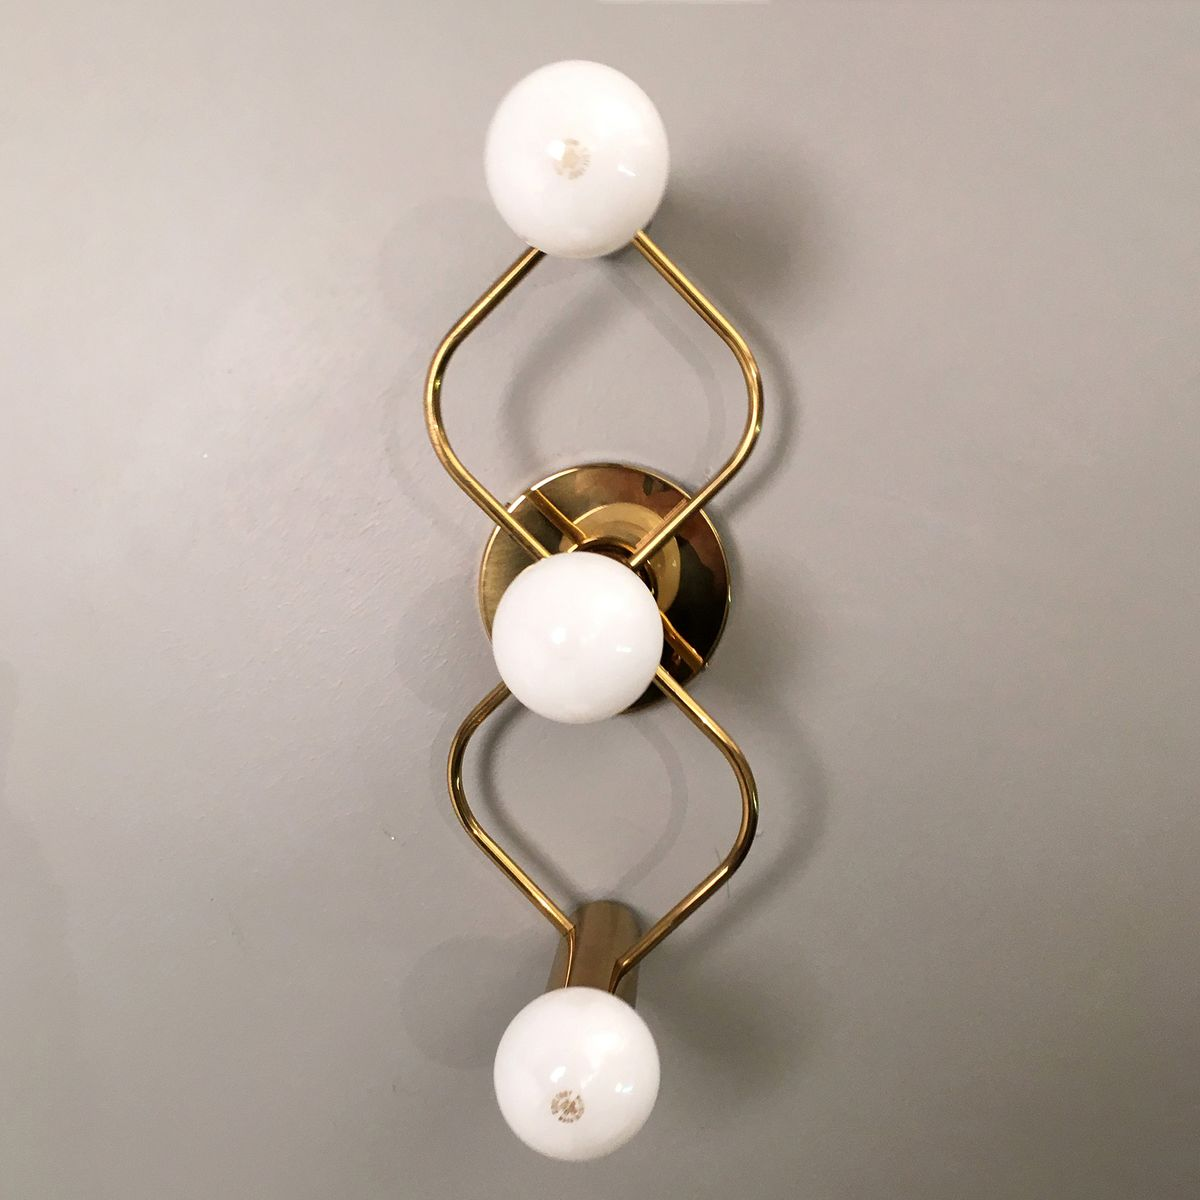 Sculptural Wall Or Ceiling Lamp from Leola, 1970s